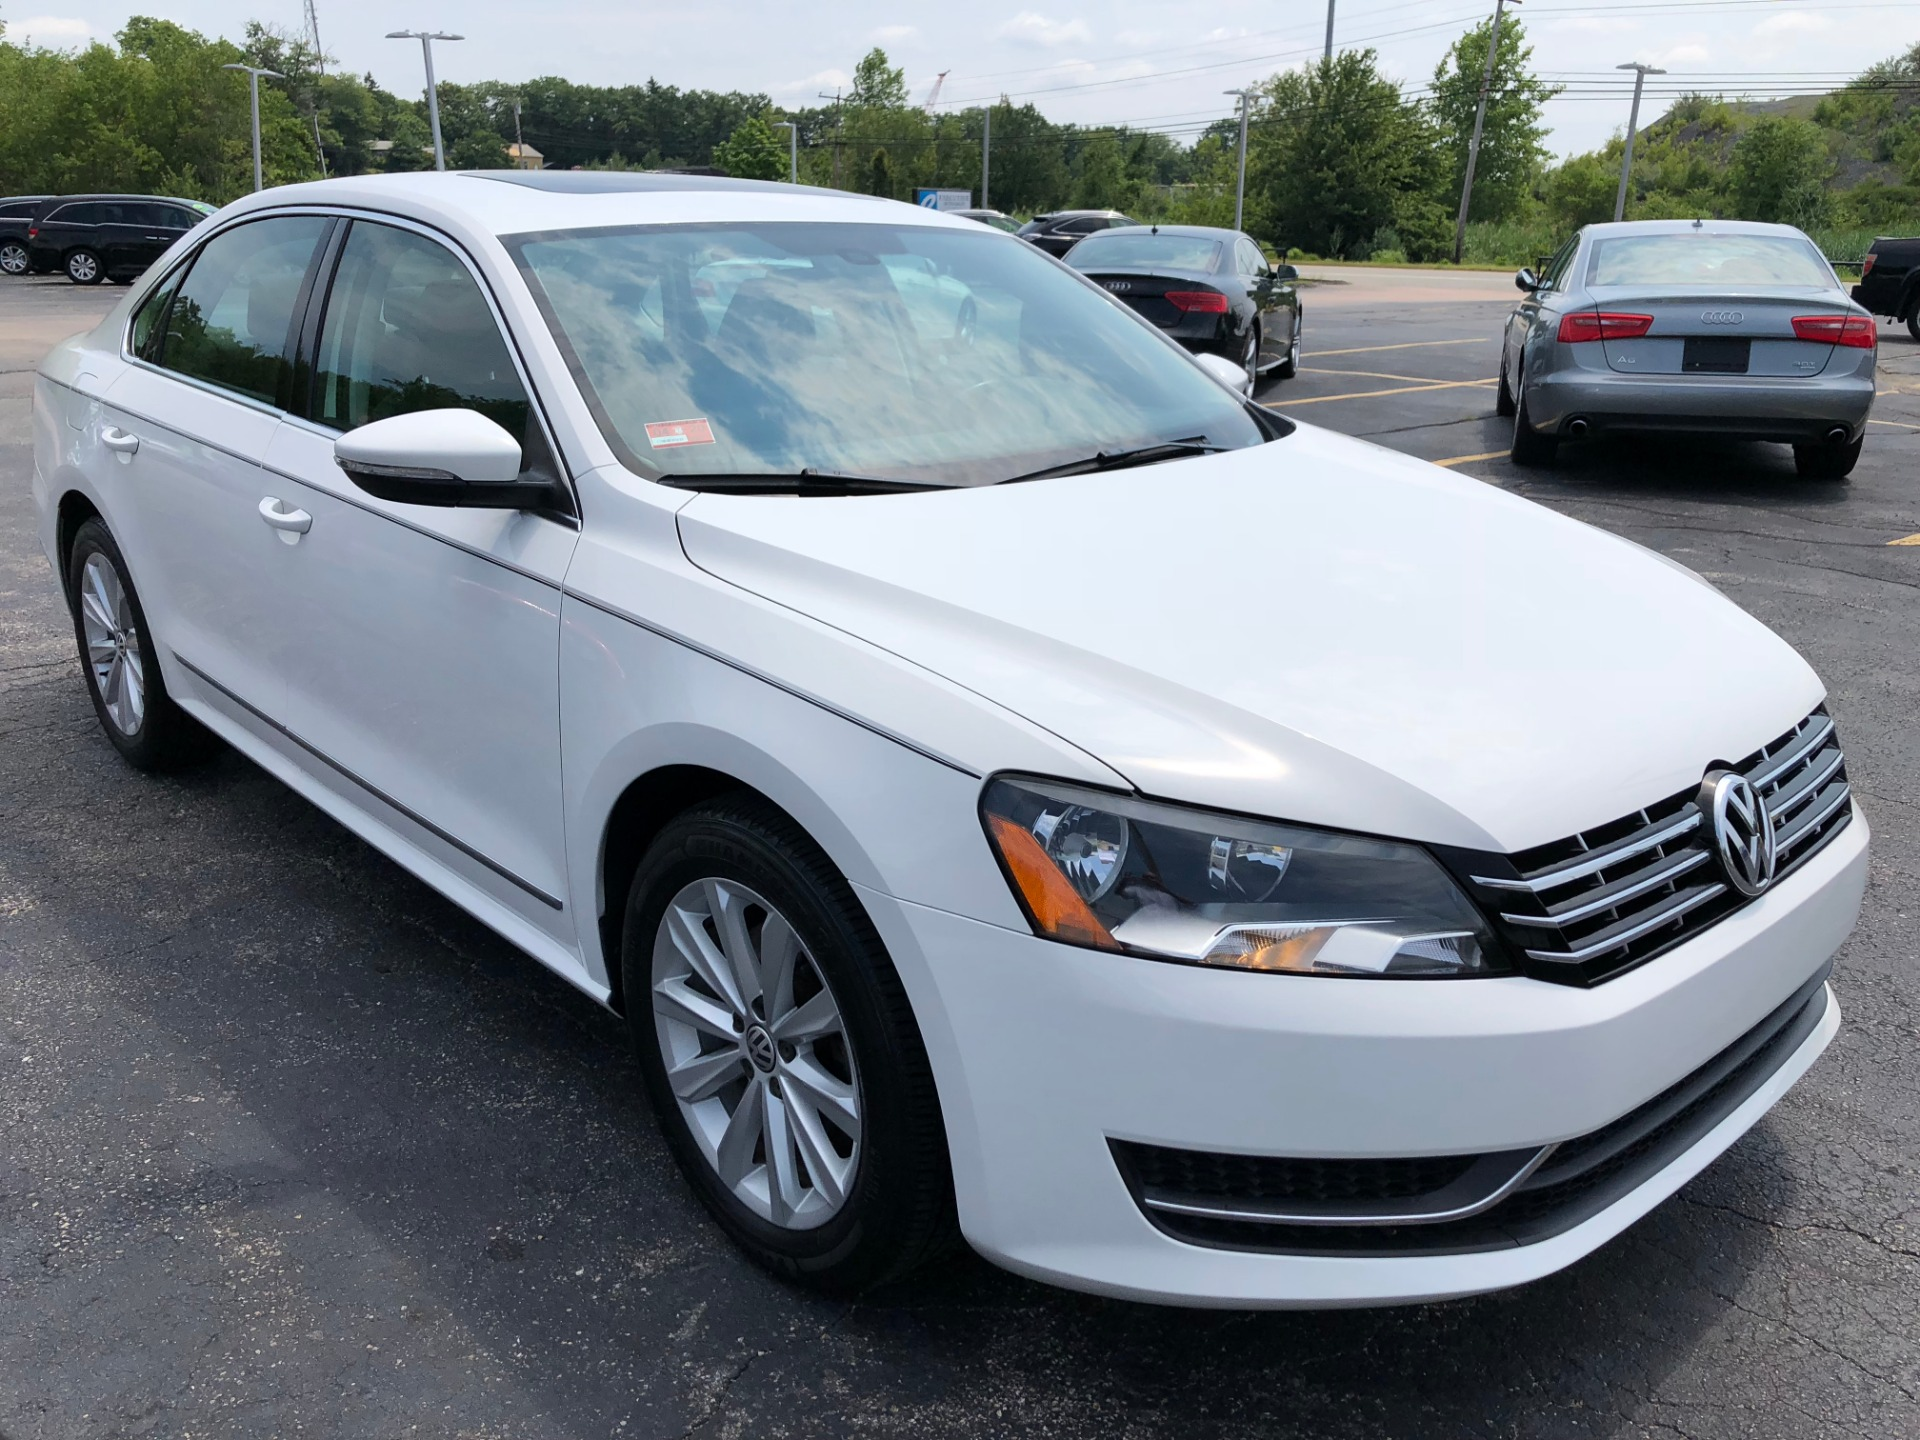 Used-2012-VOLKSWAGEN-PASSAT-SEL-SEL-Used-cars-for-sale-Lake-County